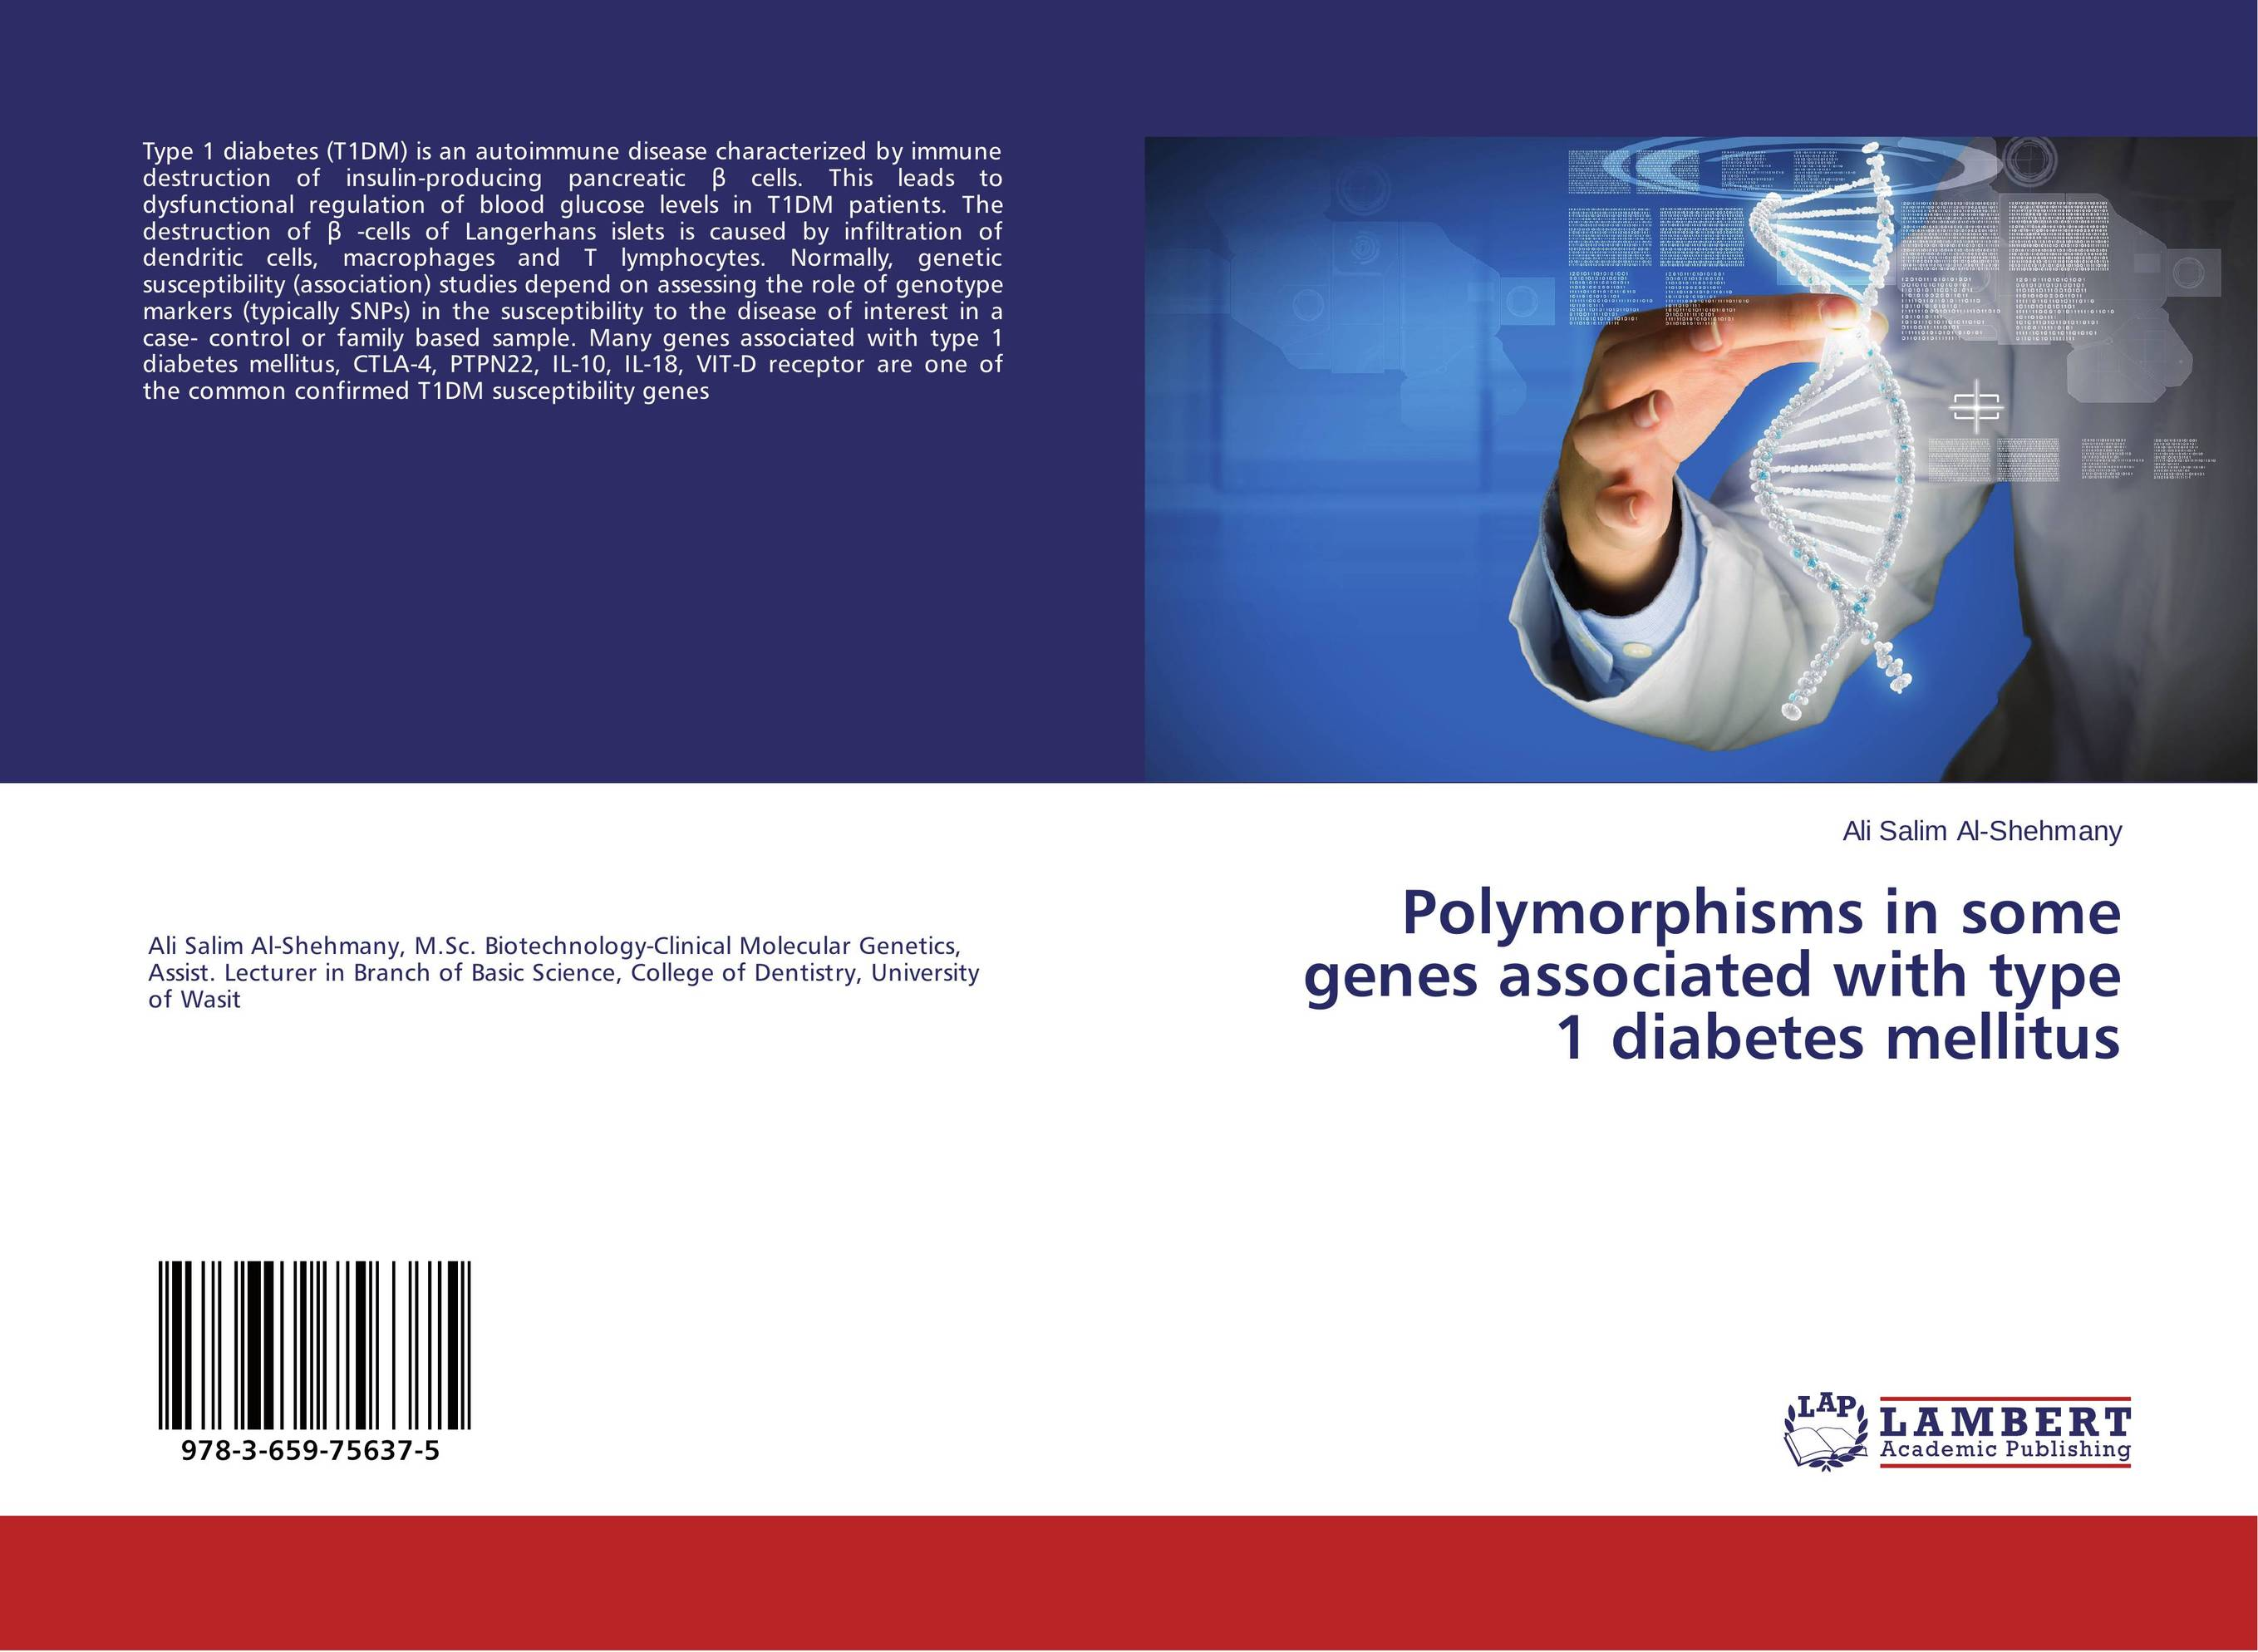 Polymorphisms in some genes associated with type 1 diabetes mellitus polymorphisms at candidate genes for disease resistance in chicken